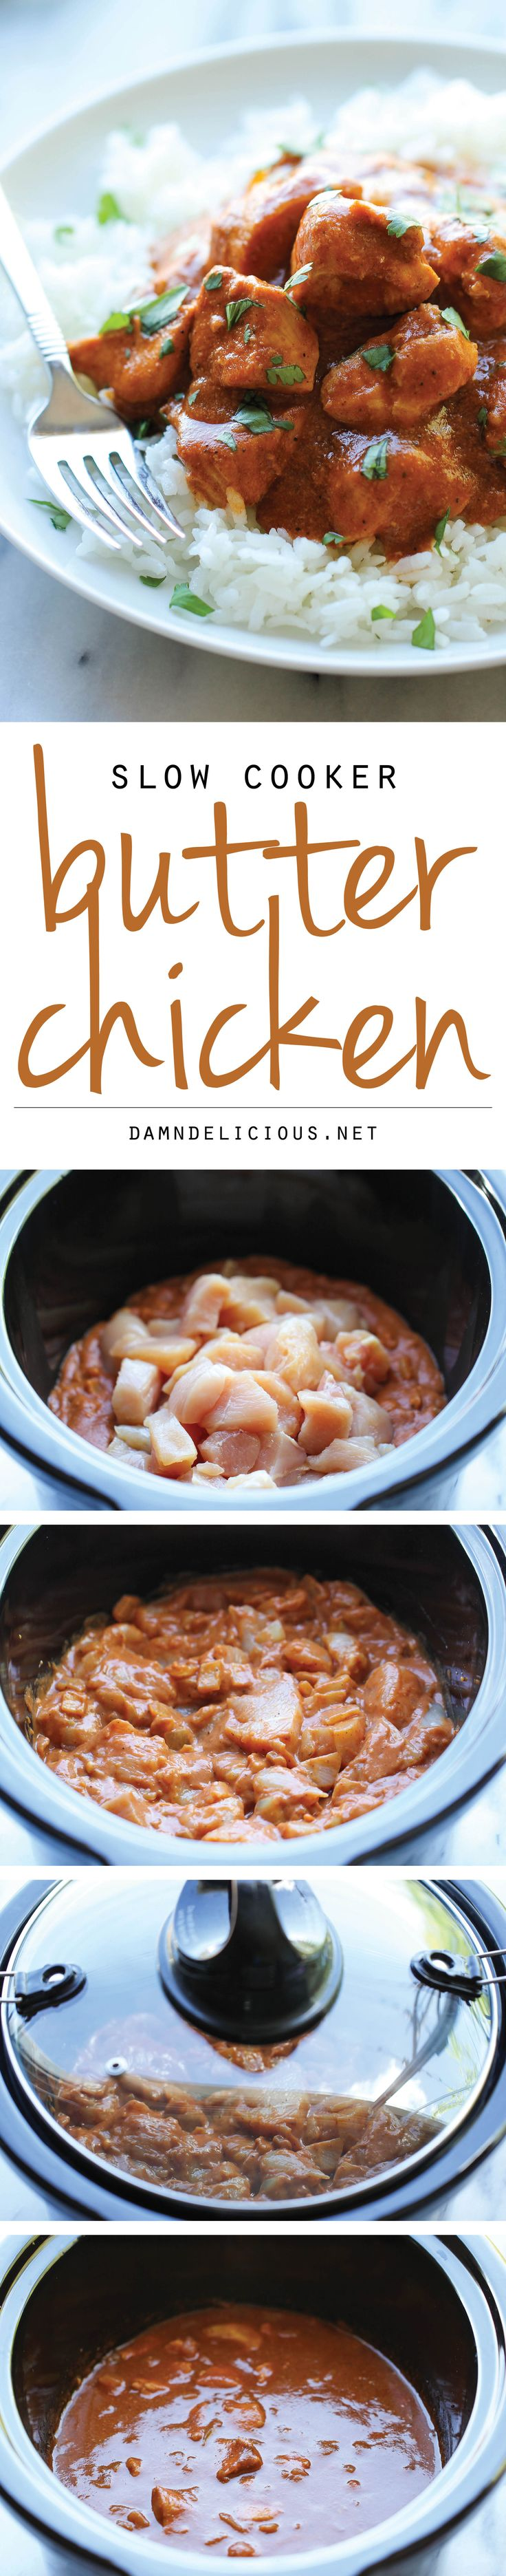 best jordan 1 colorways Slow Cooker Butter Chicken   Skip the take out and try this super easy  lightened up creamy butter chicken right in the crockpot